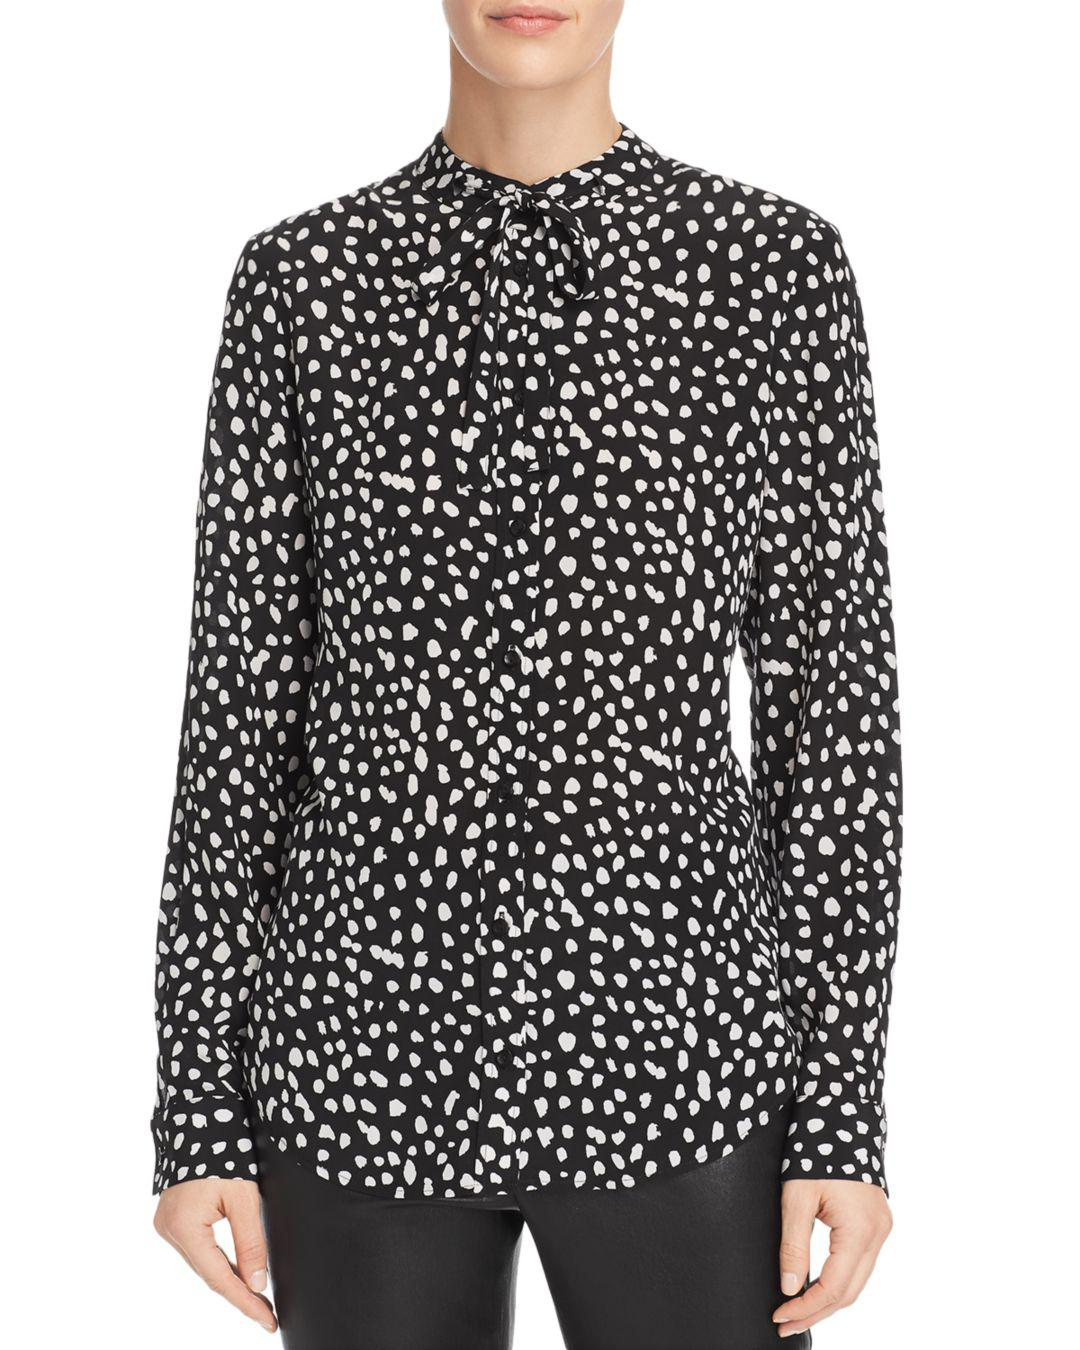 Lyst - Anine Bing Holly Printed Silk Blouse in Black - Save 0.5% ed1ce1e73